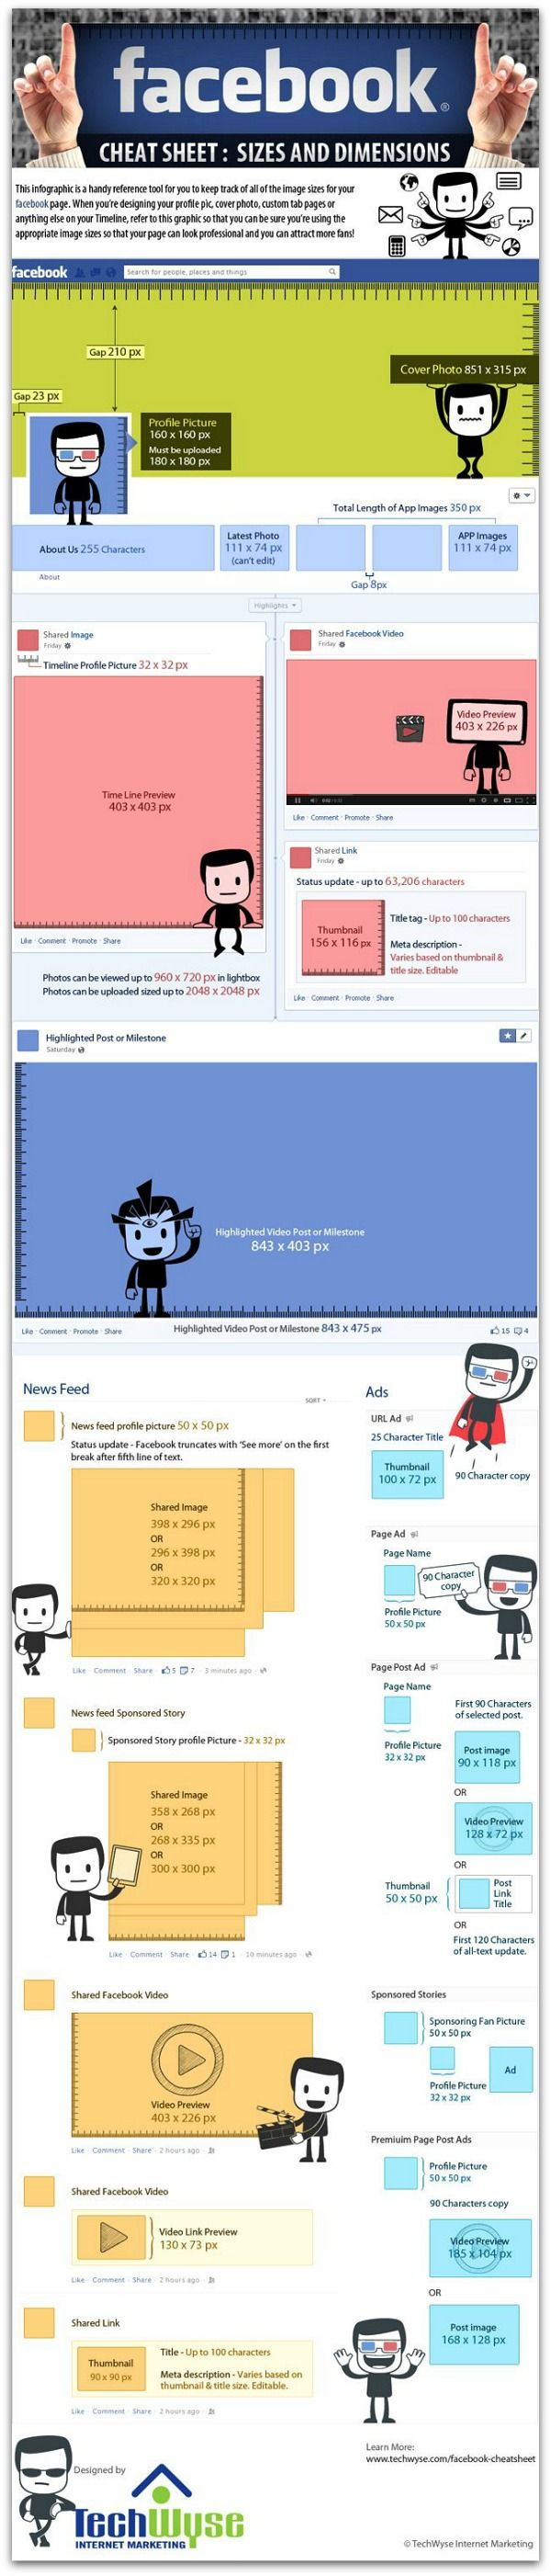 Image sizes on Facebook: A cheat sheet